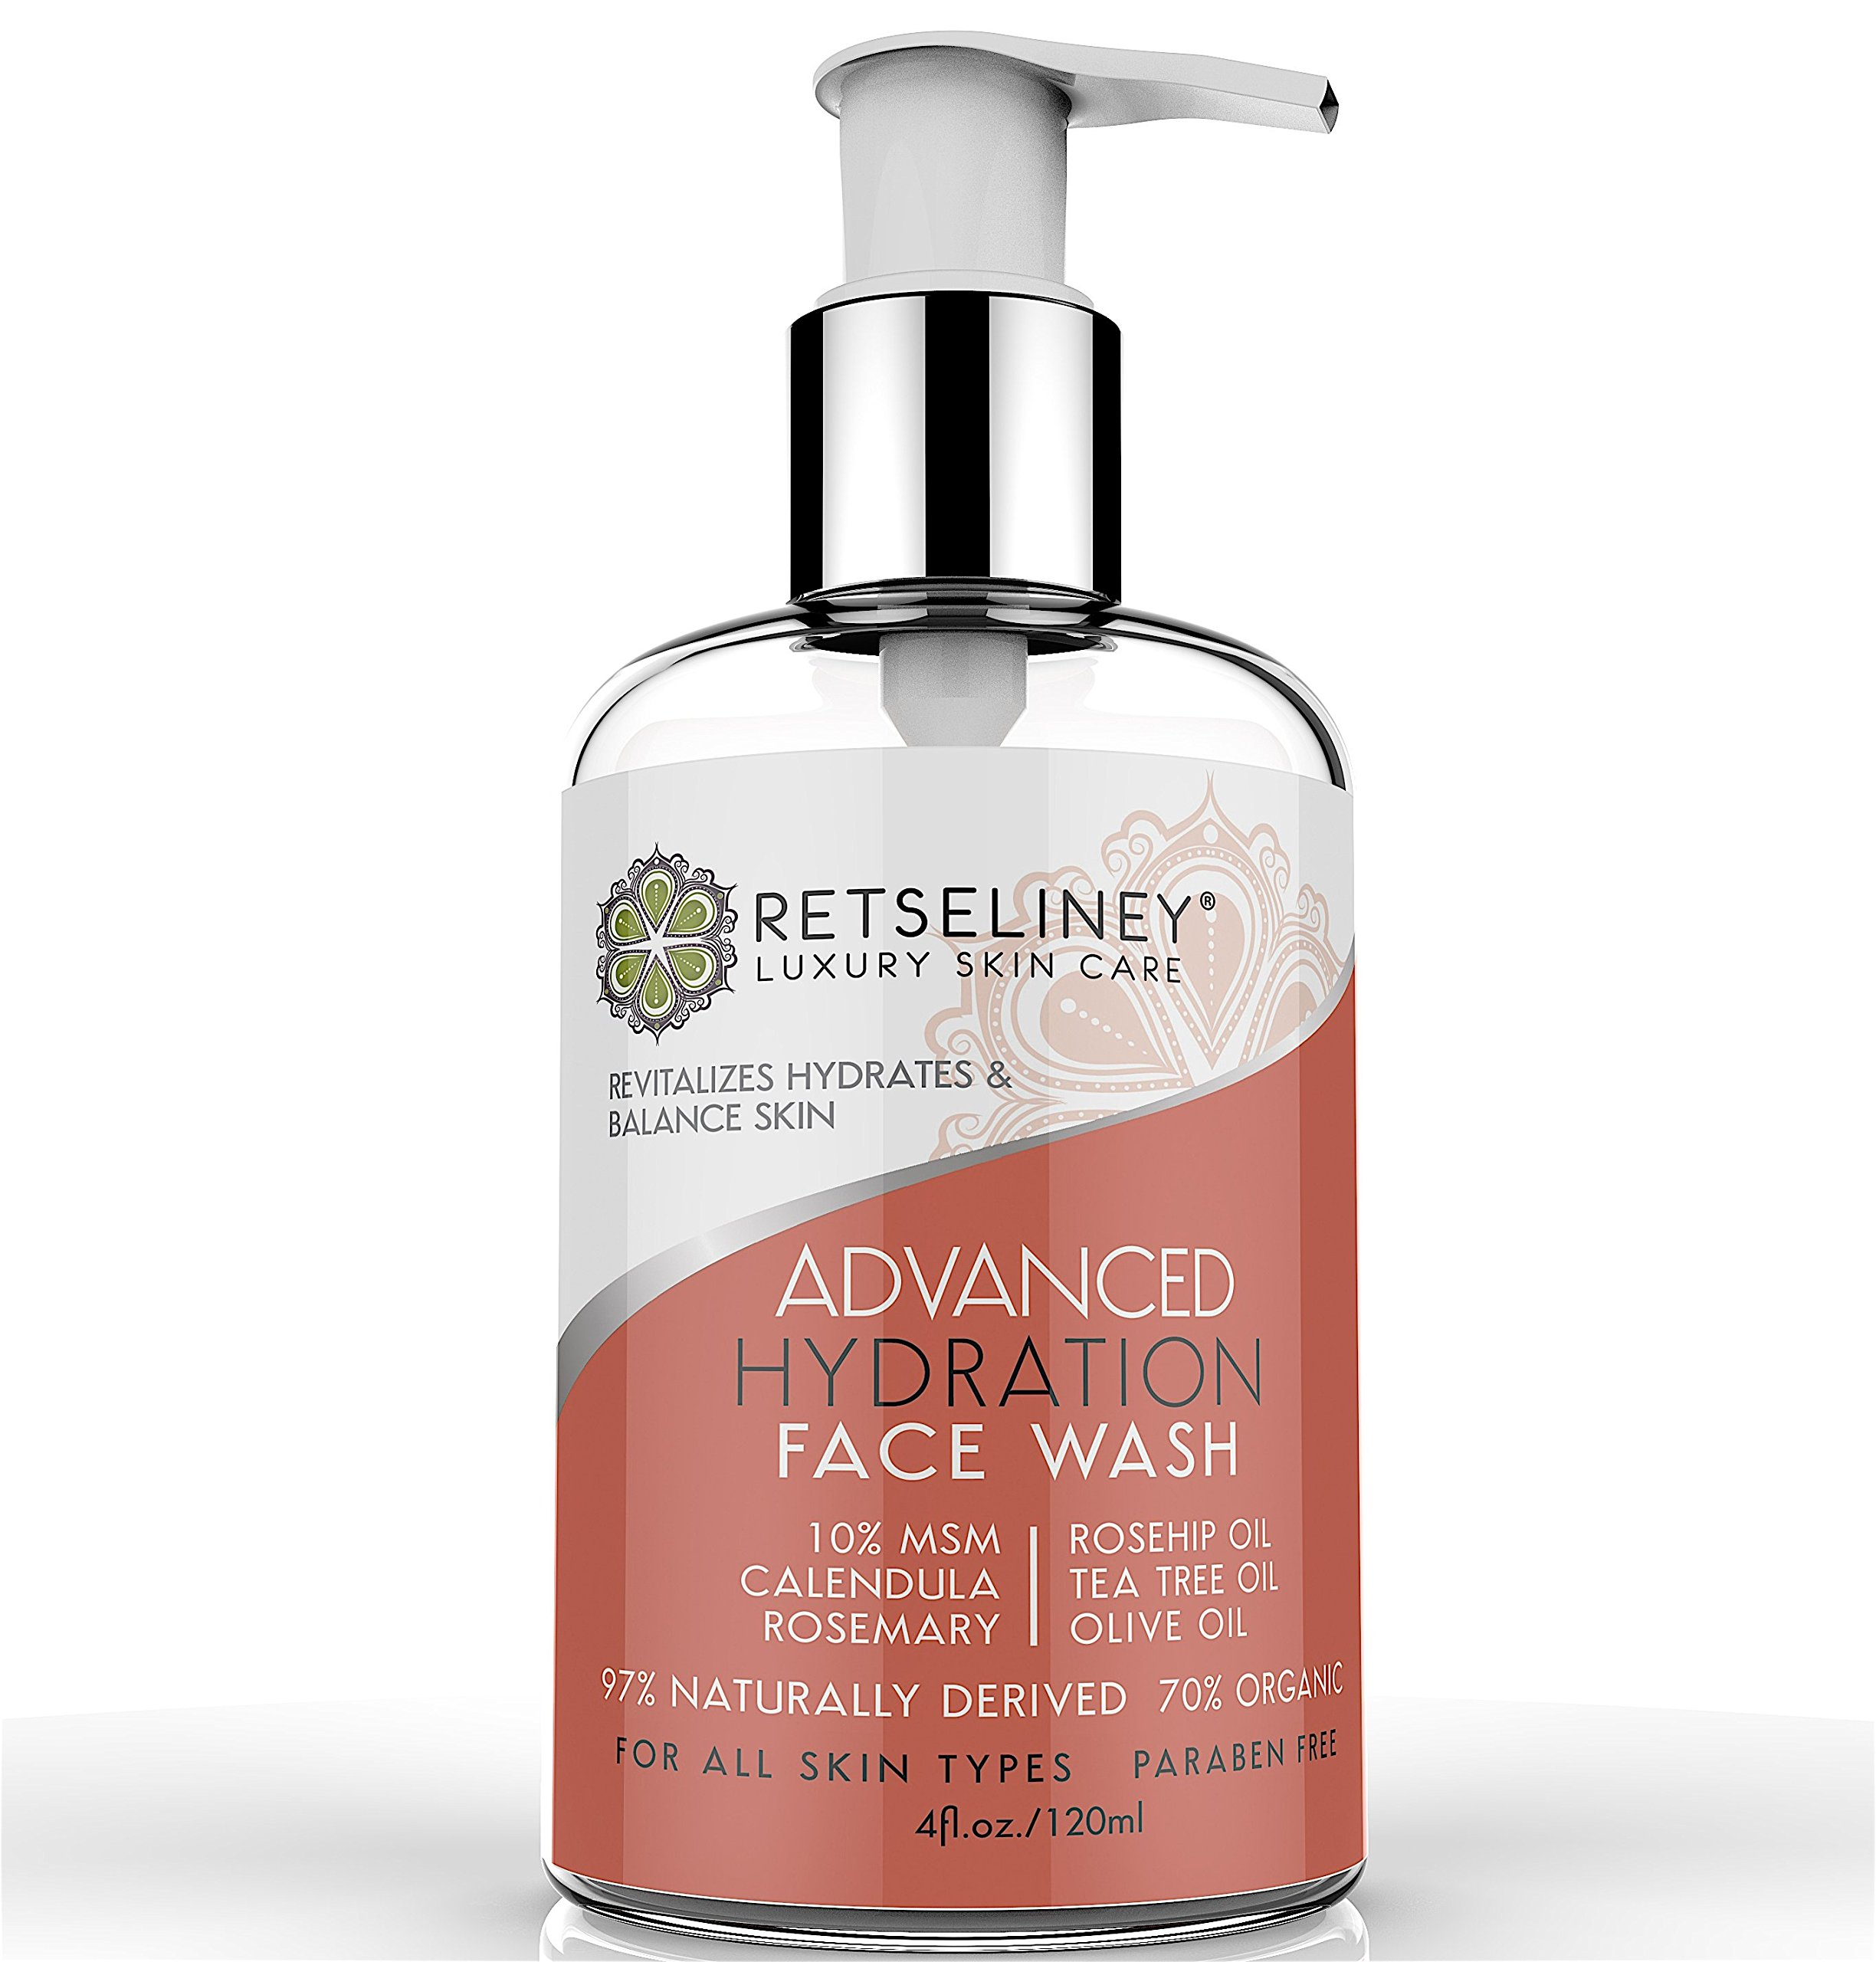 Retseliney Hydration Face wash with Tea Tree Oil, 10% MSM, Calendula, Deep Cleanse Pores, Natural and Organic Treatment for Acne and Blemishes, Anti-Aging & Anti-Wrinkles Facial Cleanser